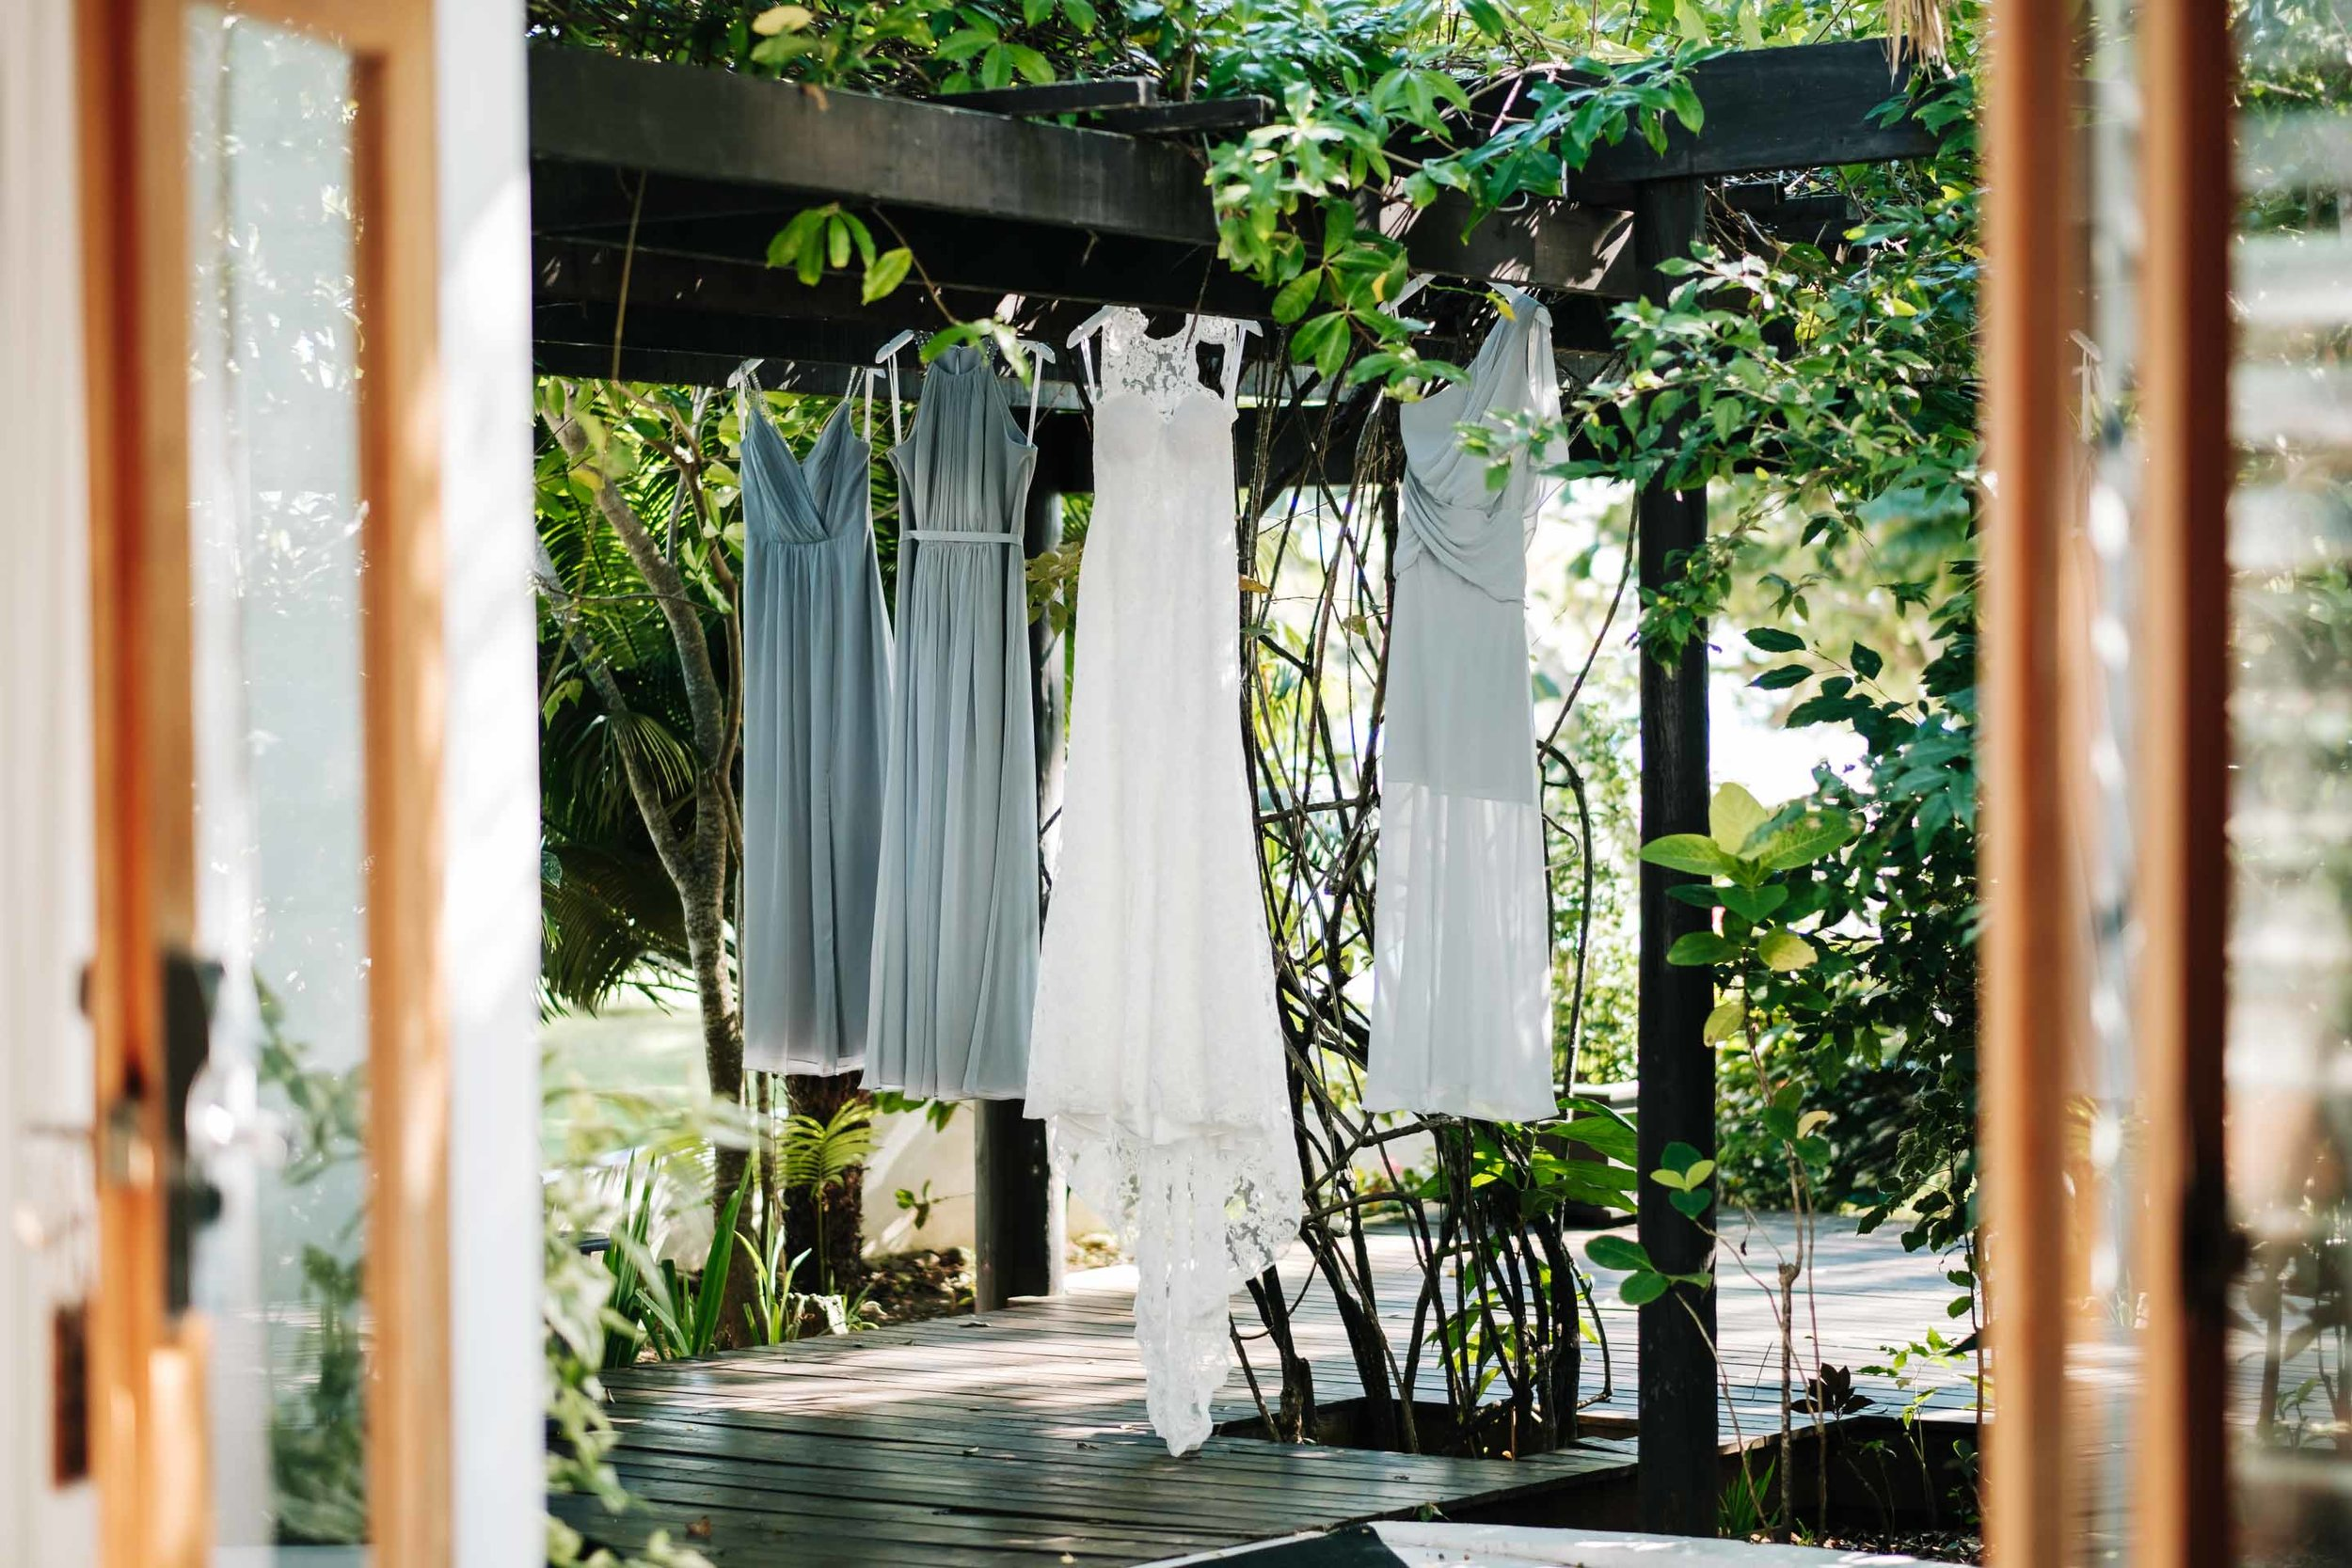 The brides wedding gown by Grace loves Lace with her brides maids dresses hanging from the vine covered pergola outside their room